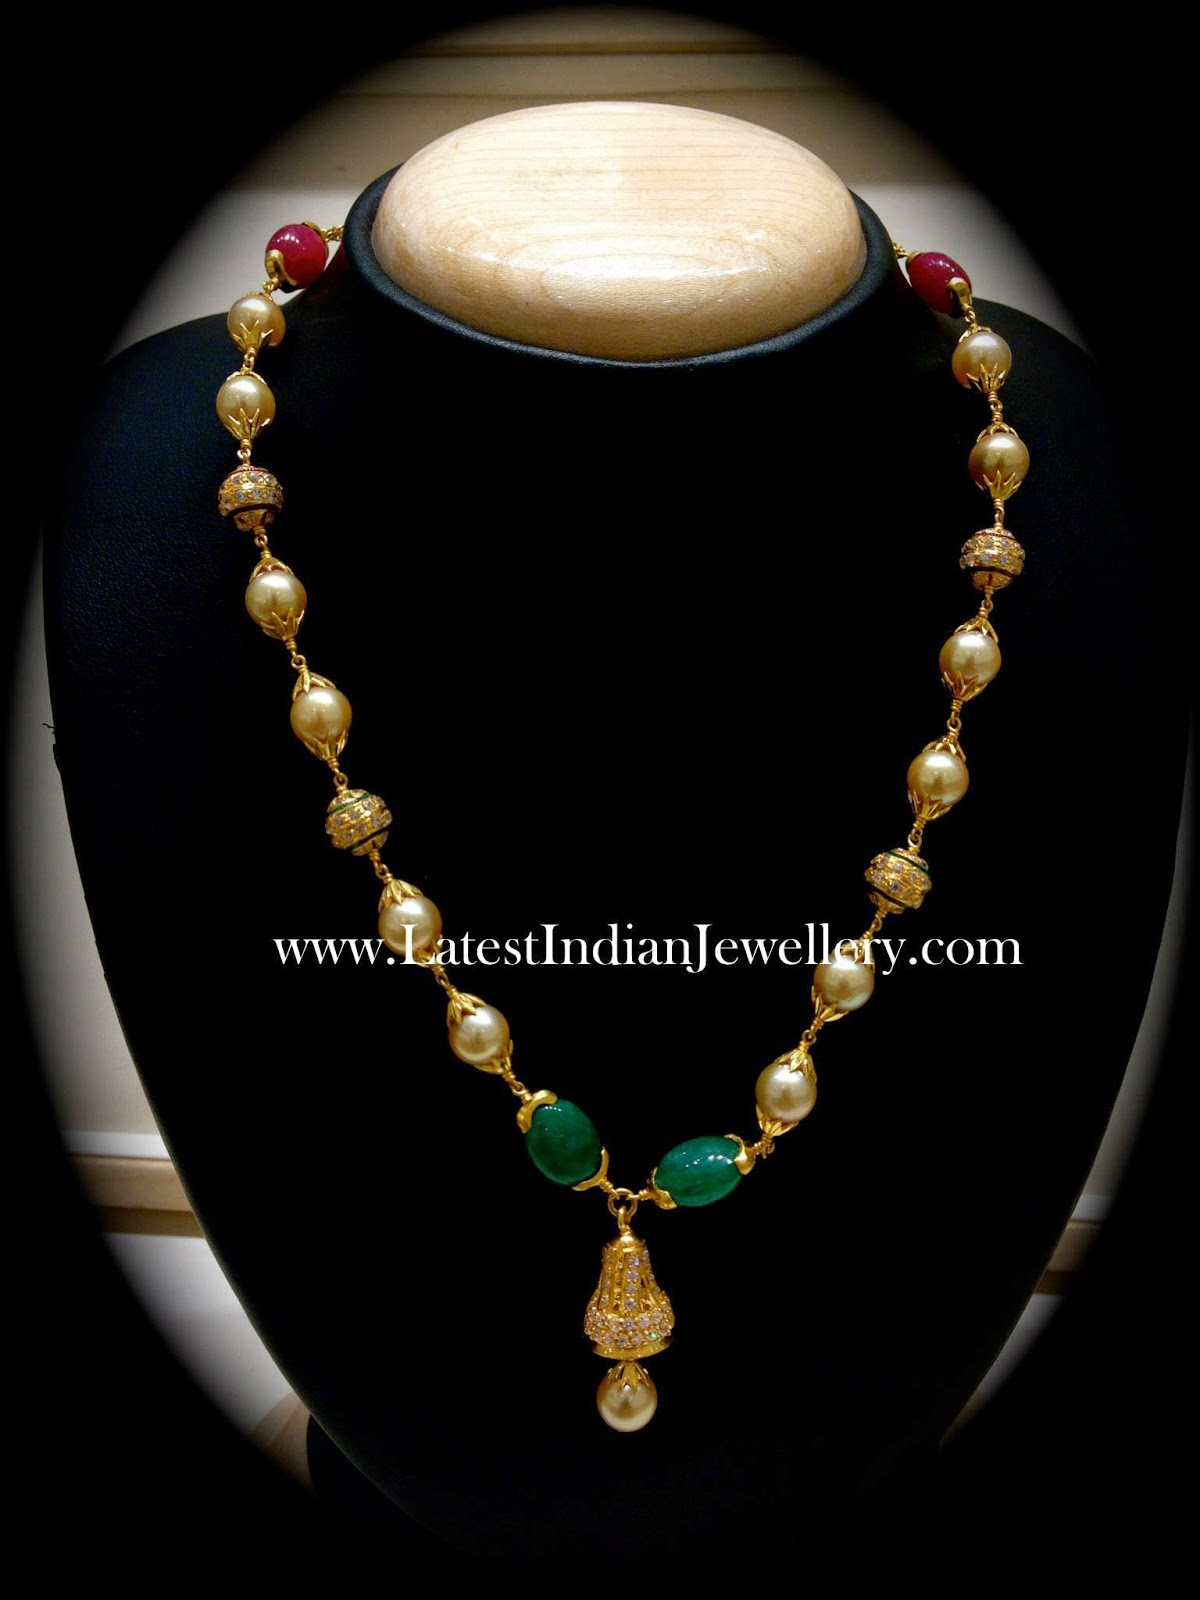 South Sea Pearls Beads Chain Latest Indian Jewellery Designs